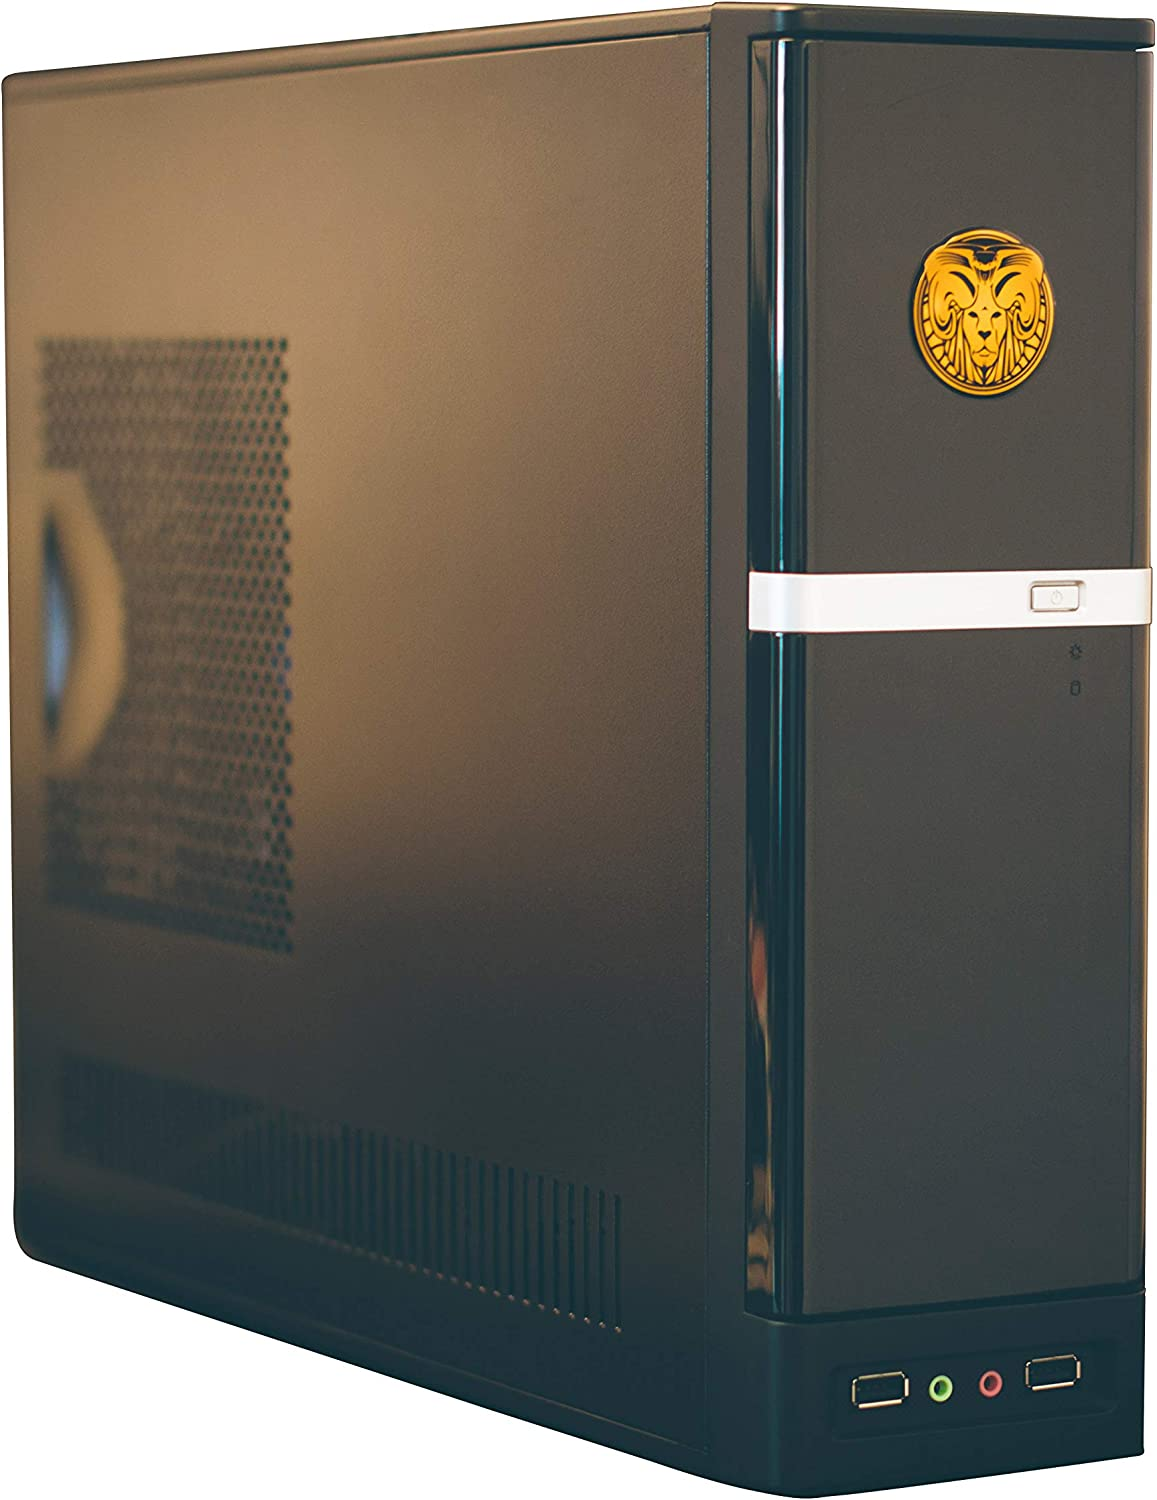 Ponos Plus Home & Office Intel Core I3-8100, 8GB DDR4, 1TB HDD, Windows 10 Pro, Premium Desktop Computer, 3 Year Warranty, Fast, Reliable, Unmatched Performance in its Class